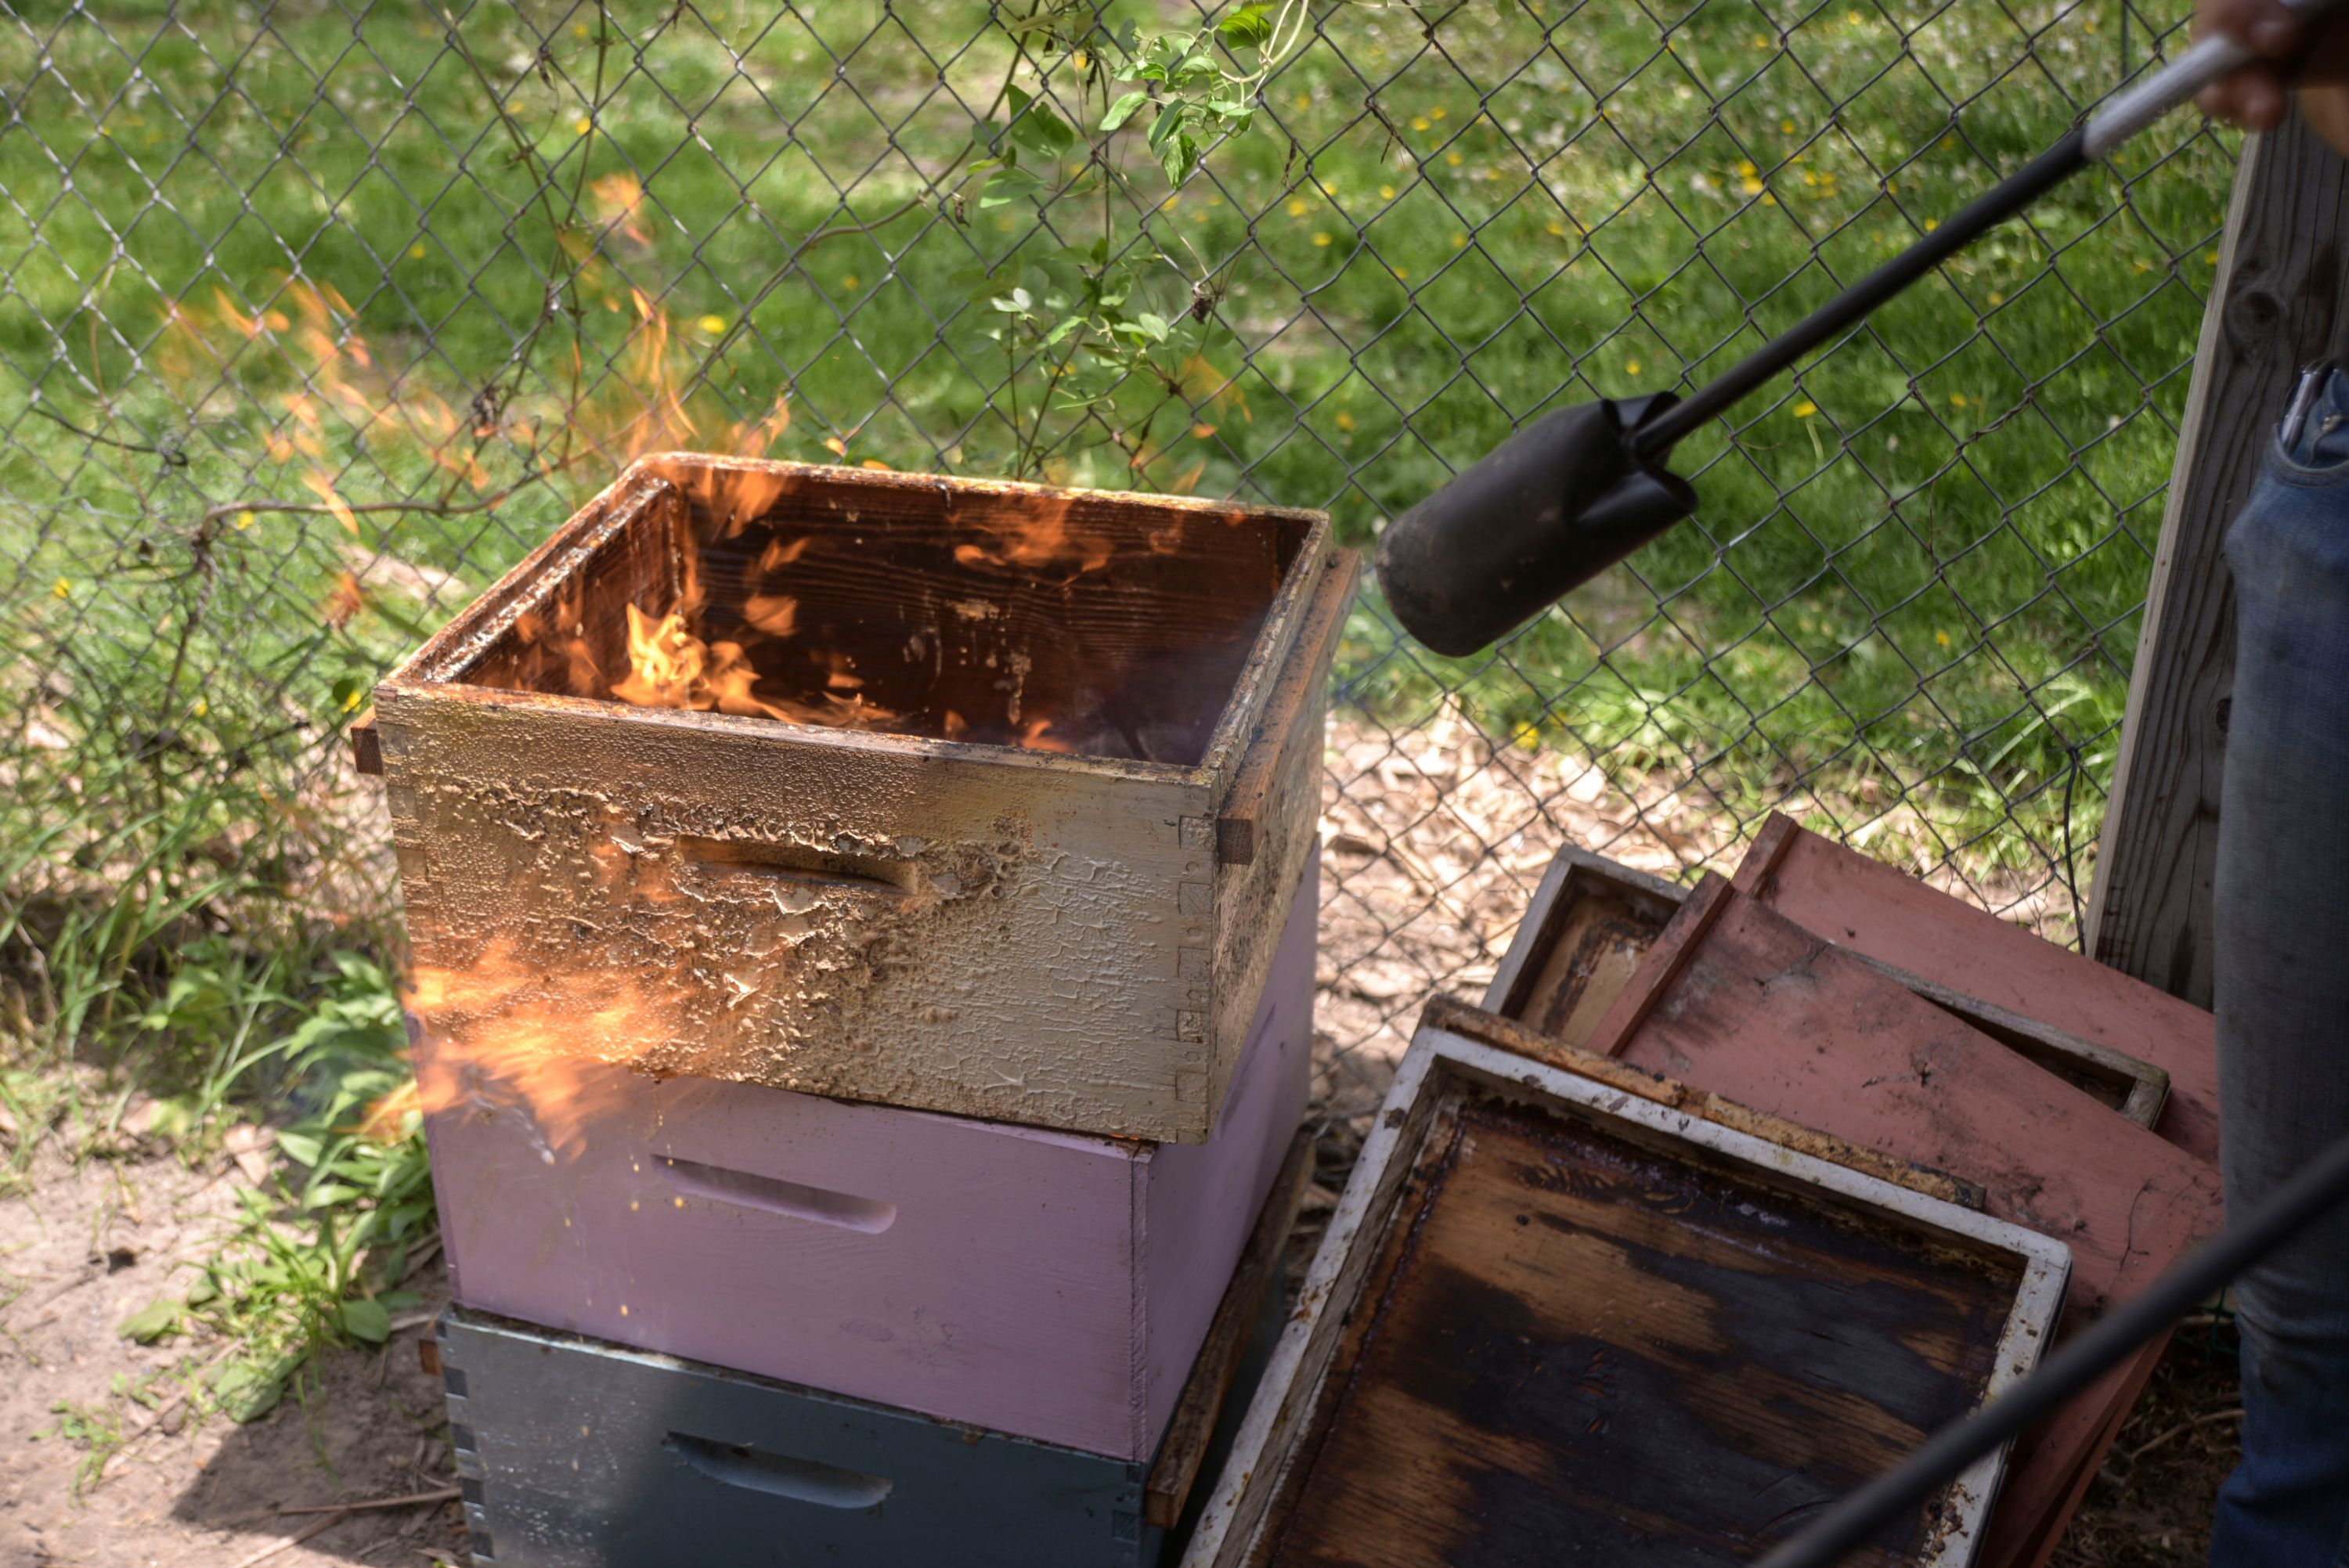 Scorching bee boxes with a torch